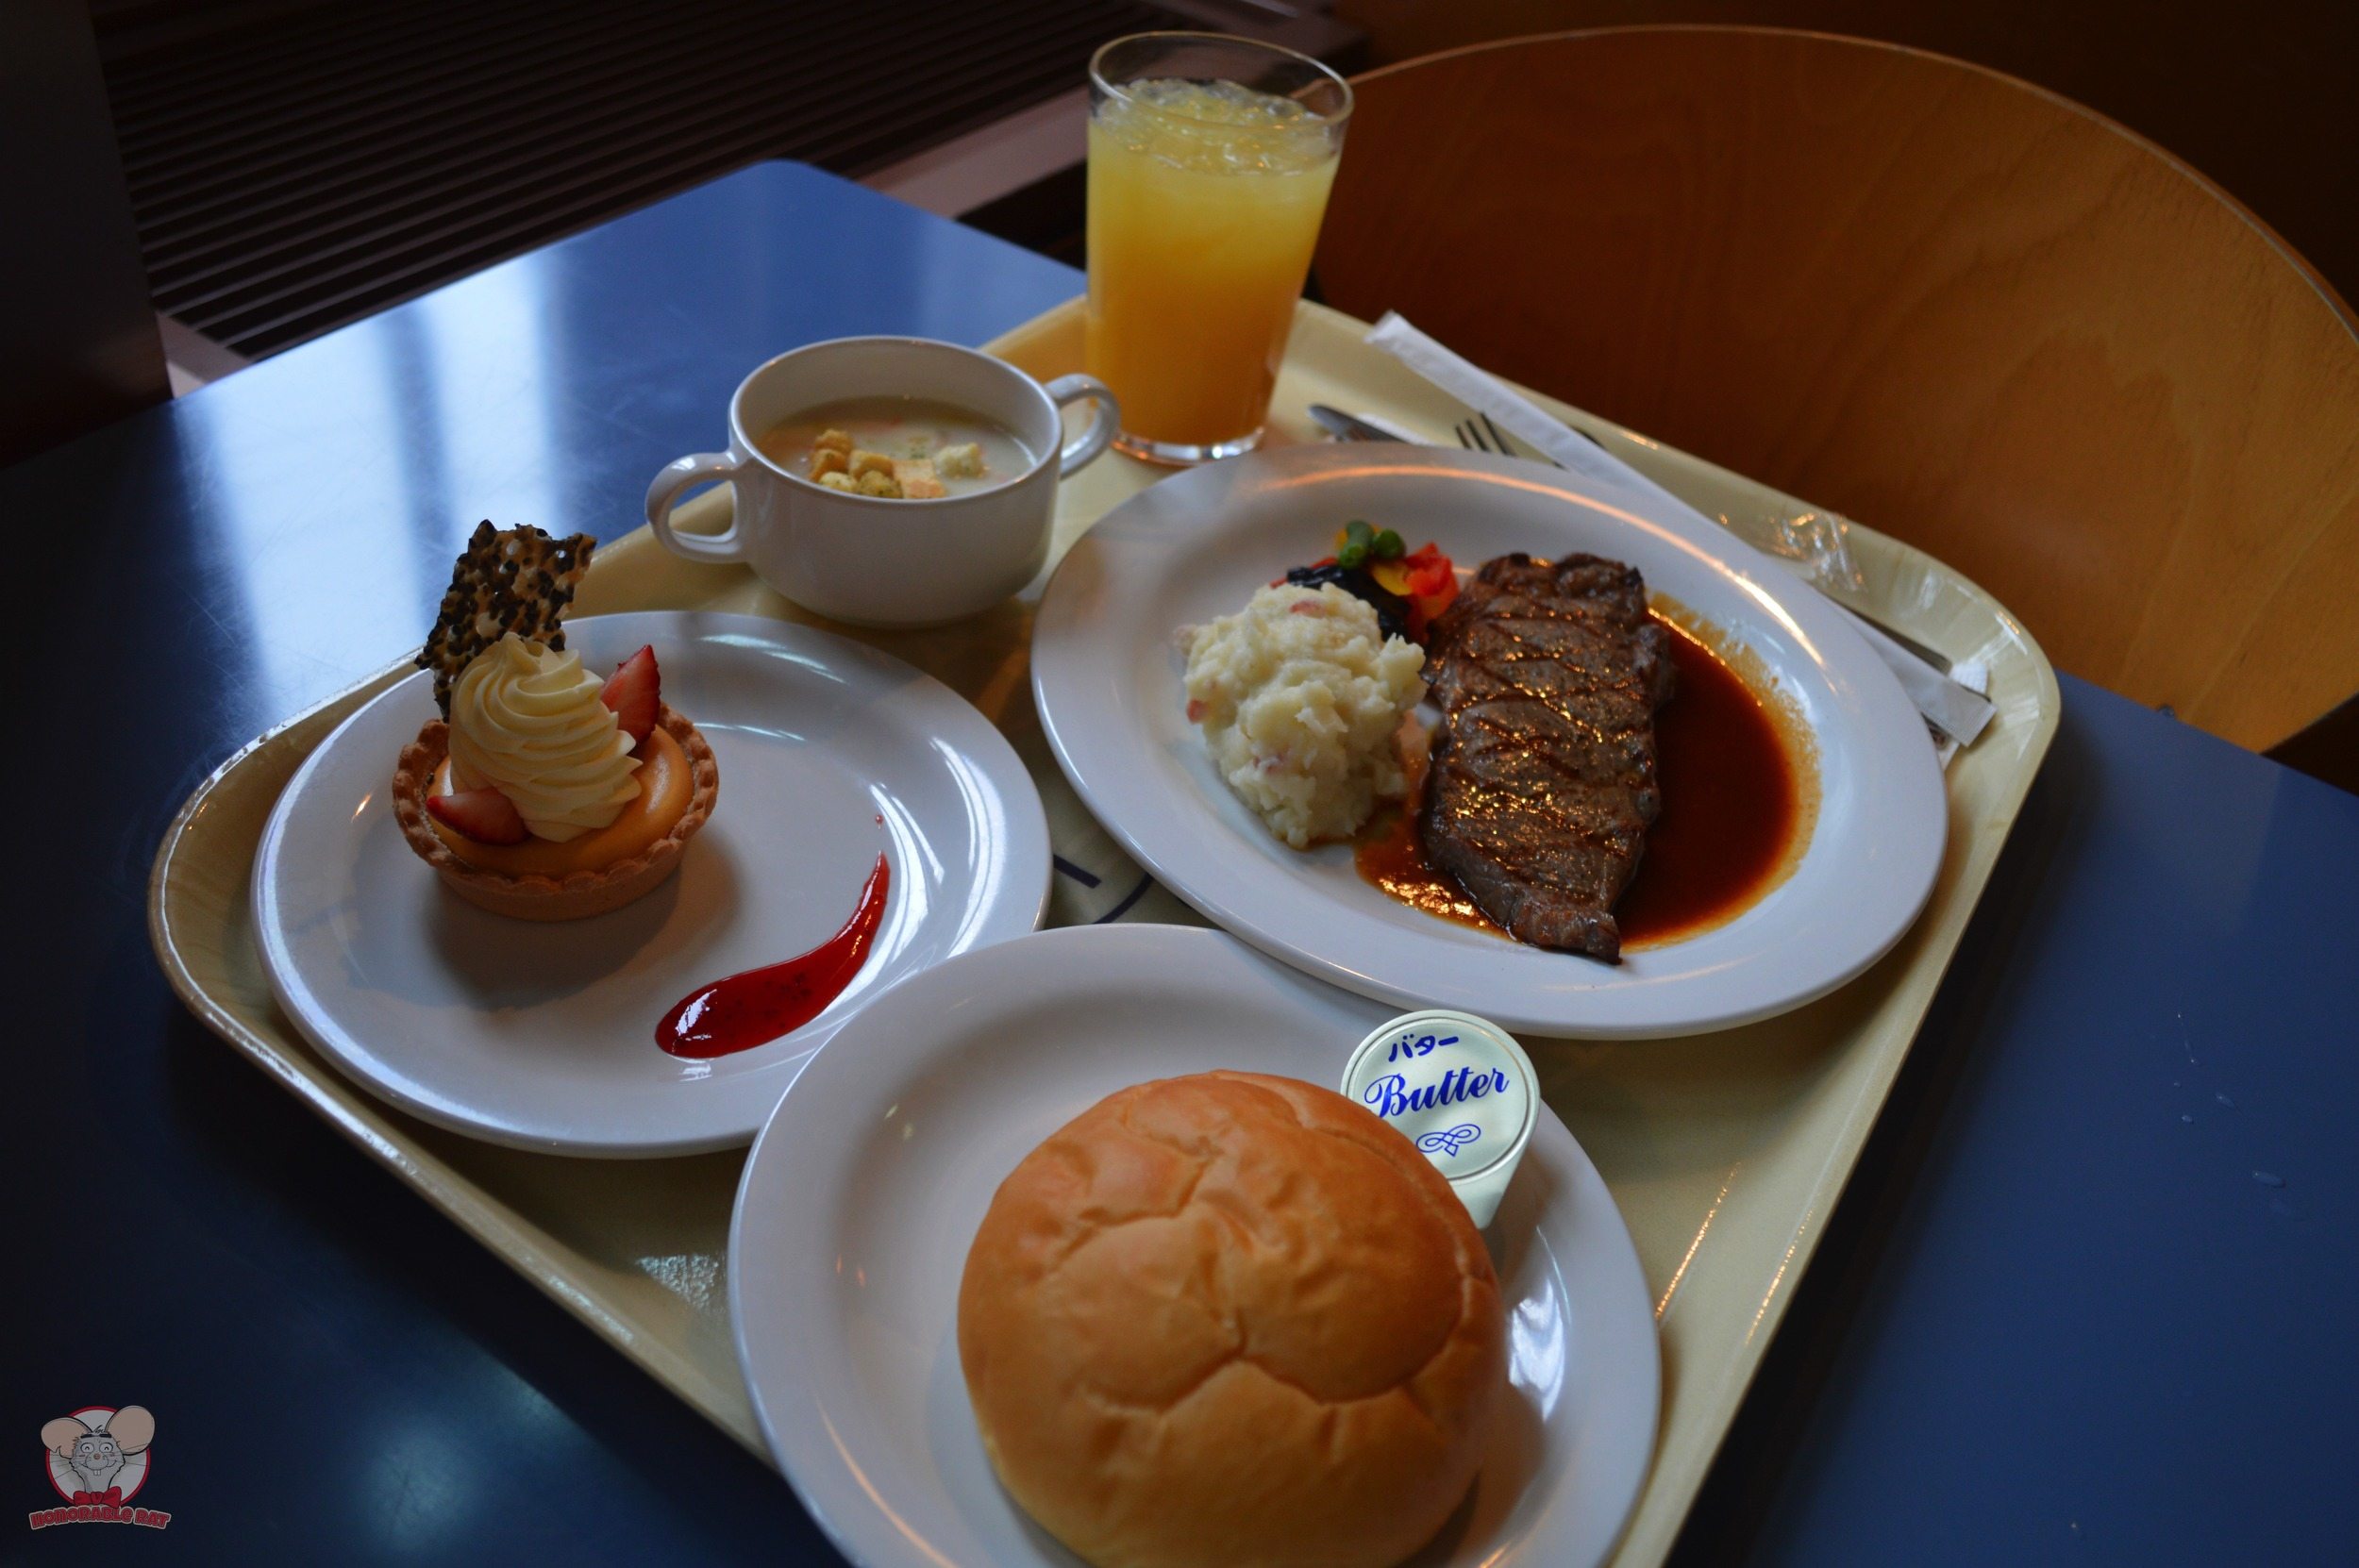 Creamy Vegetable Soup with Chicken and Shrimp, Grilled Beef Steak with Gravy (Yuzu Flavor), Double Cheese Tart and a side of bread